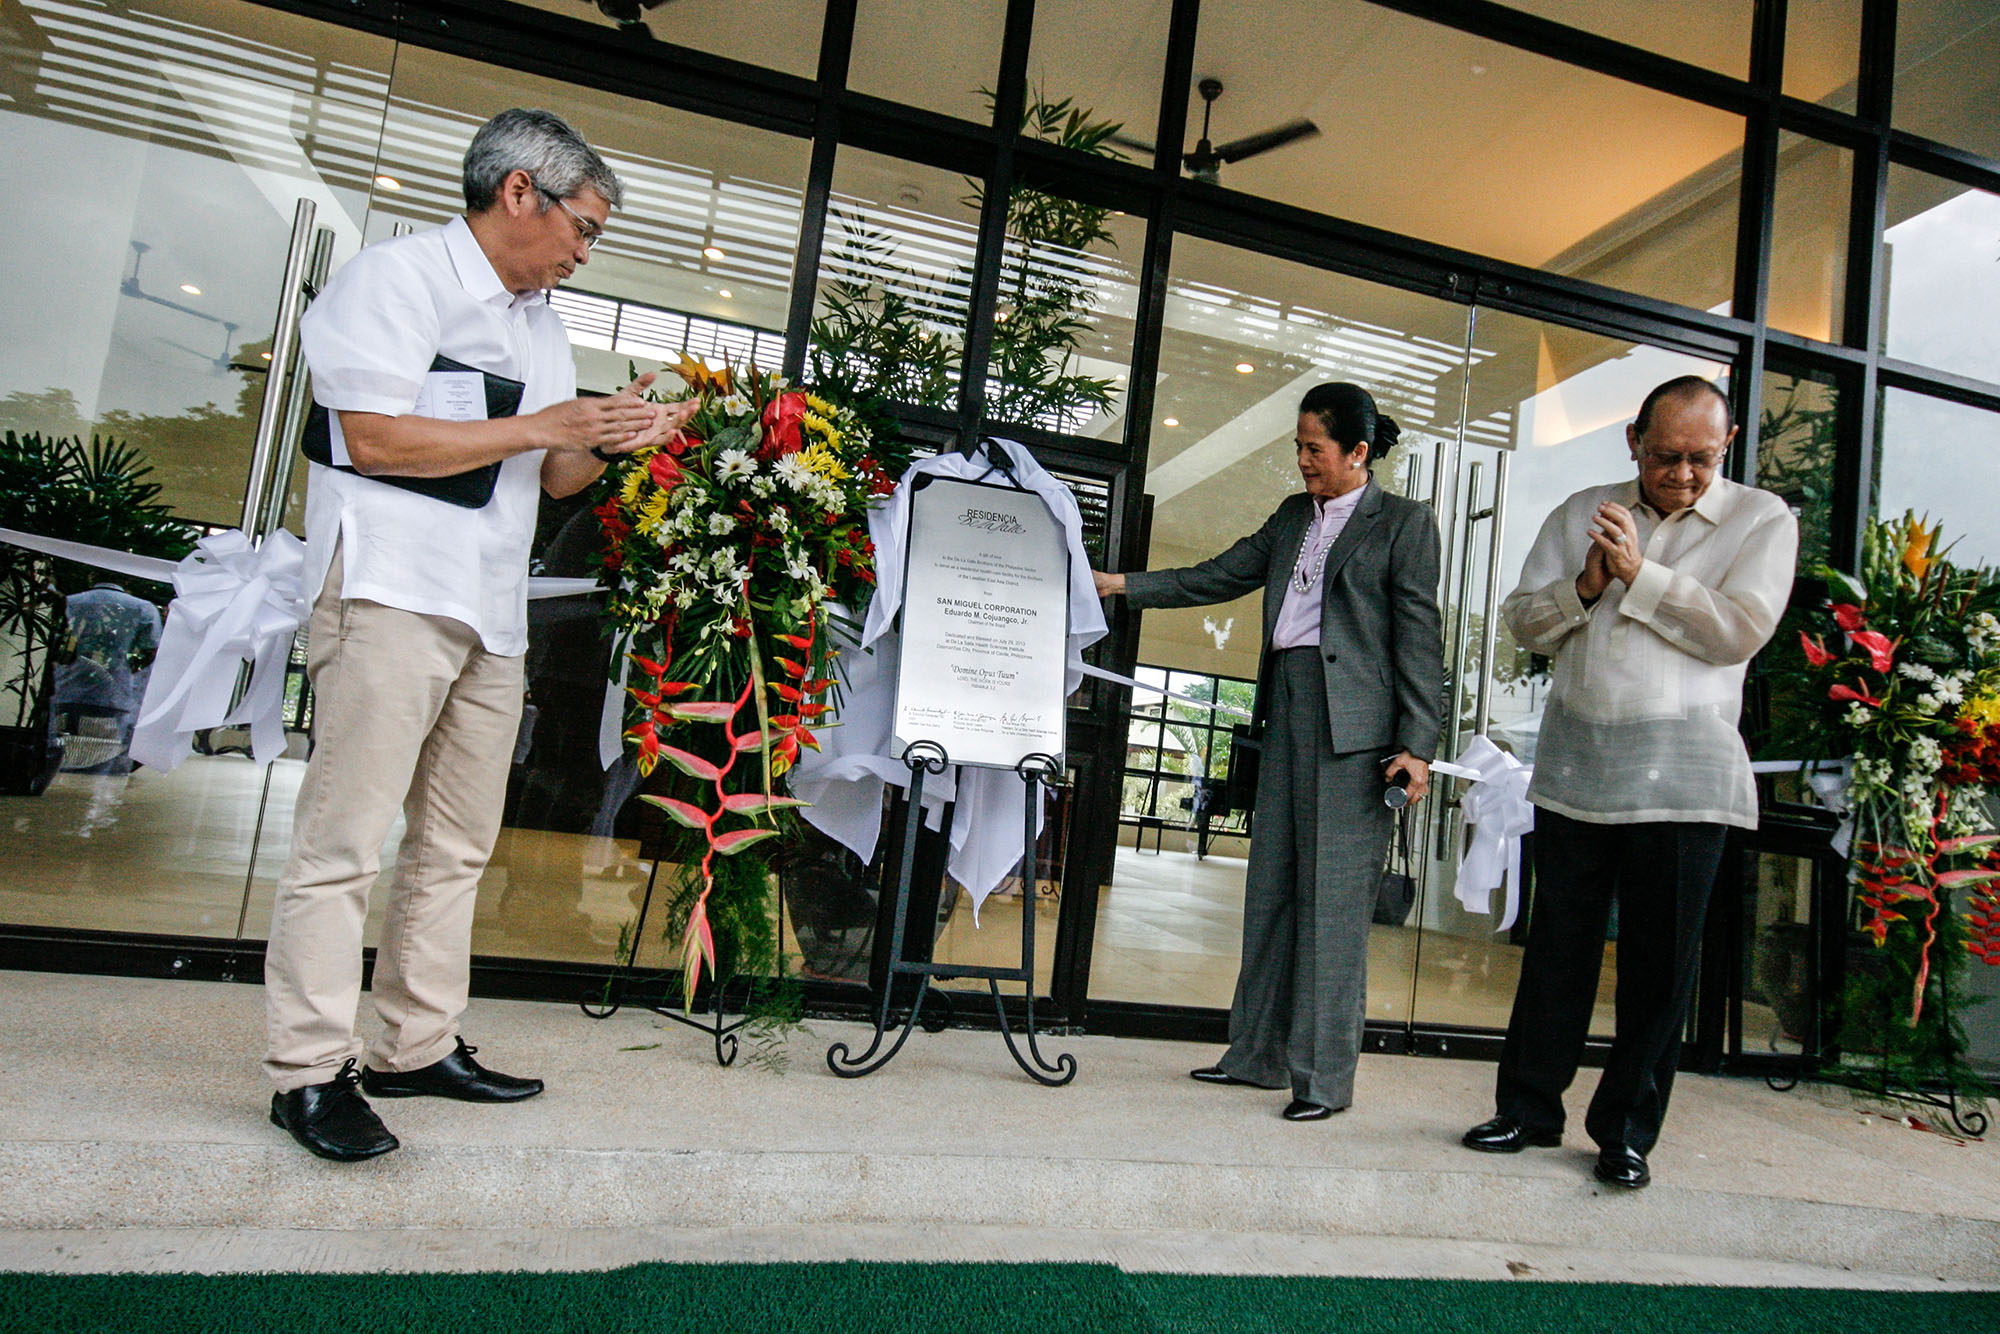 """Mr. Eduardo """"Danding"""" Congjuangco (right) and his wife,Soledad """"Gretchen"""" Cojuangco (center), unveil a commemorative marker in their honor whileBr. Edmundo Fernandez FSC, LEAD Visitor, looks on."""